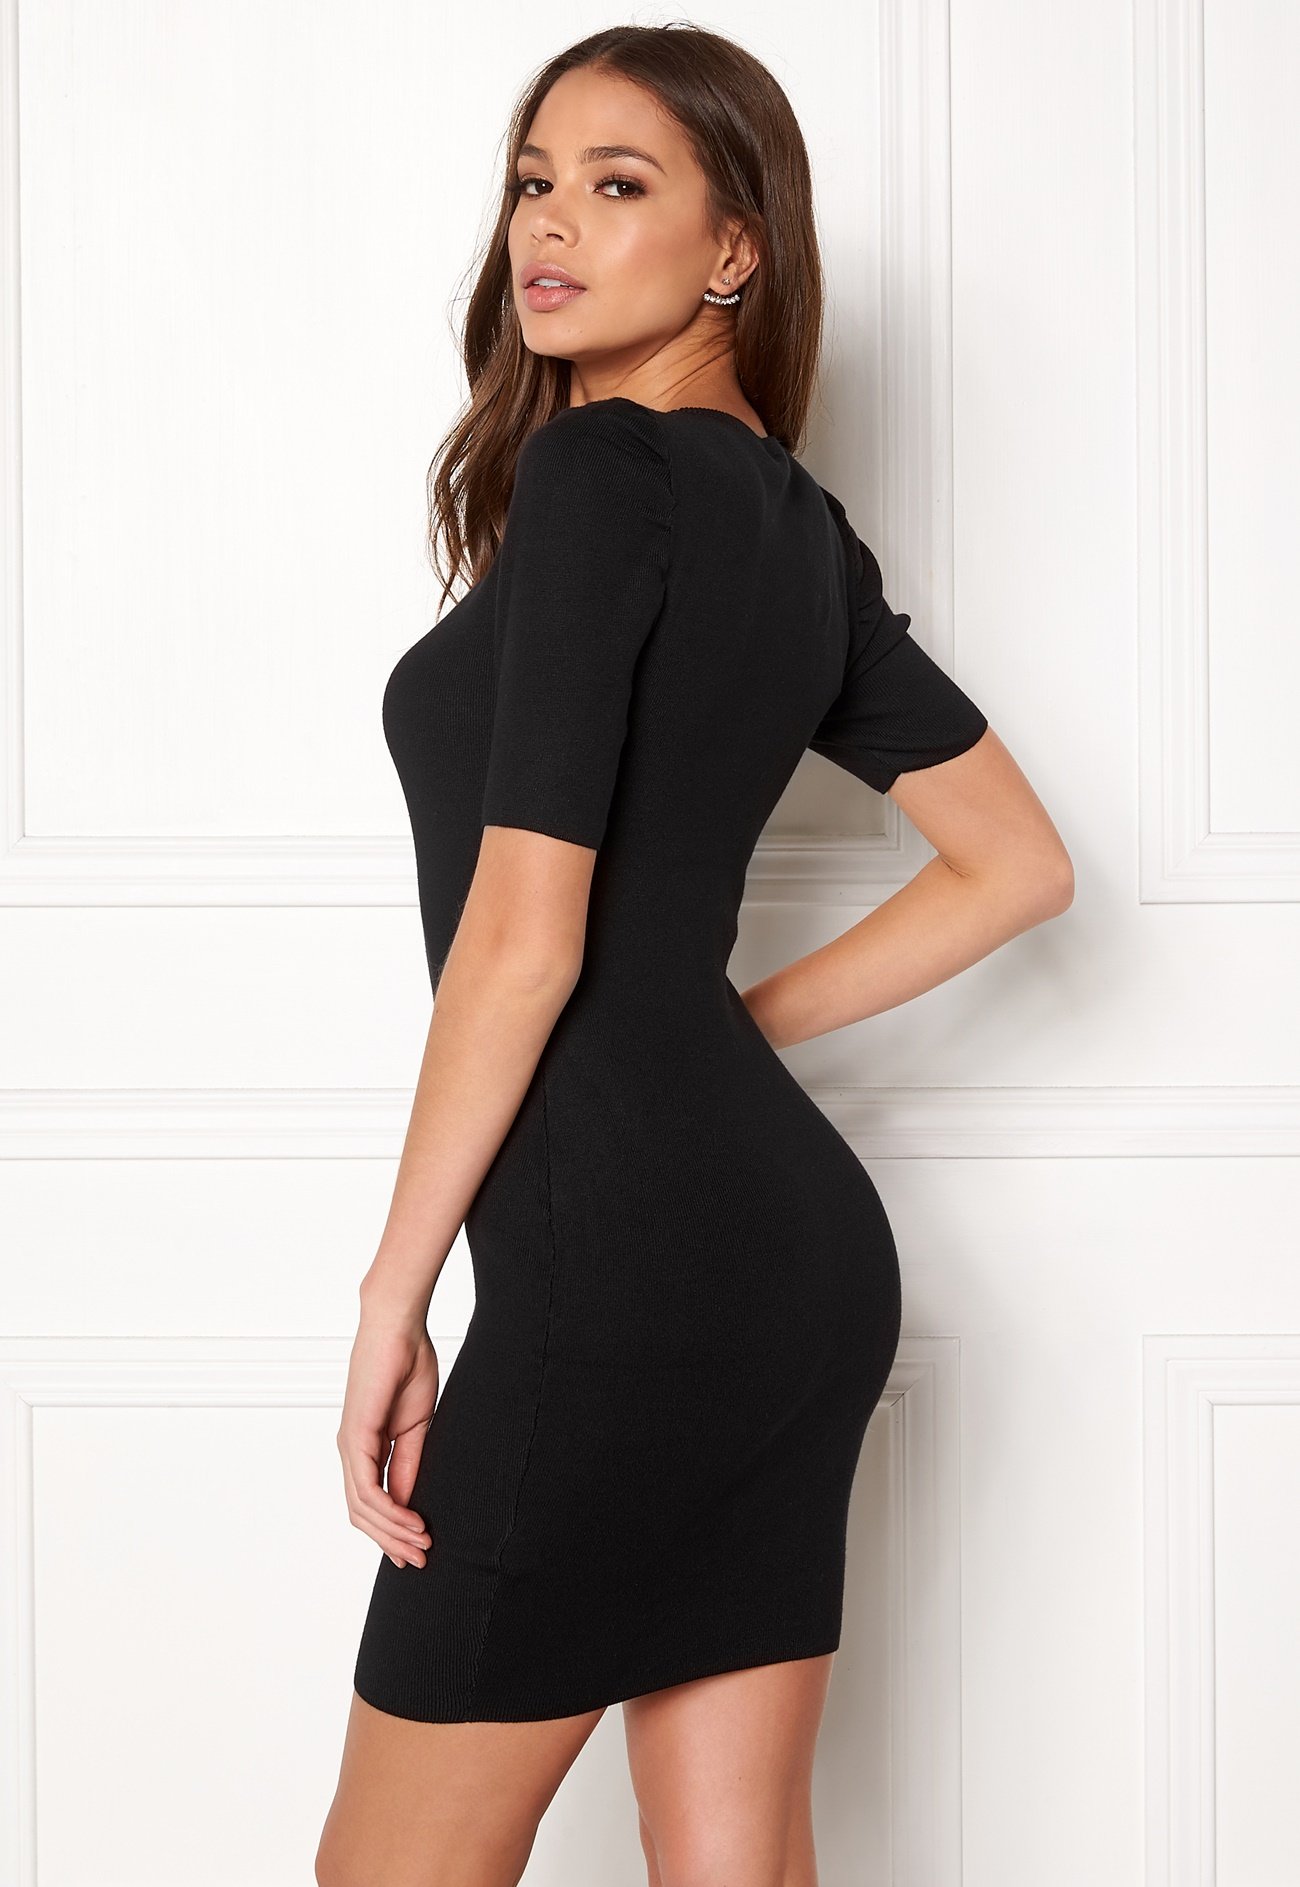 New; Bestsellers. Back In Stock. Top Rated. Shop By Lulus Label. Brands We Love. Shop by Style Little Black Dresses Backless Dresses Bodycon Dresses Cocktail Dresses Club Dresses Formal Dresses Lace Dresses Long Sleeve Dresses Wedding Dresses Vacation Dresses Maxi Dresses Midi Dresses Short Dresses Casual Dresses Skater Dresses Shift.